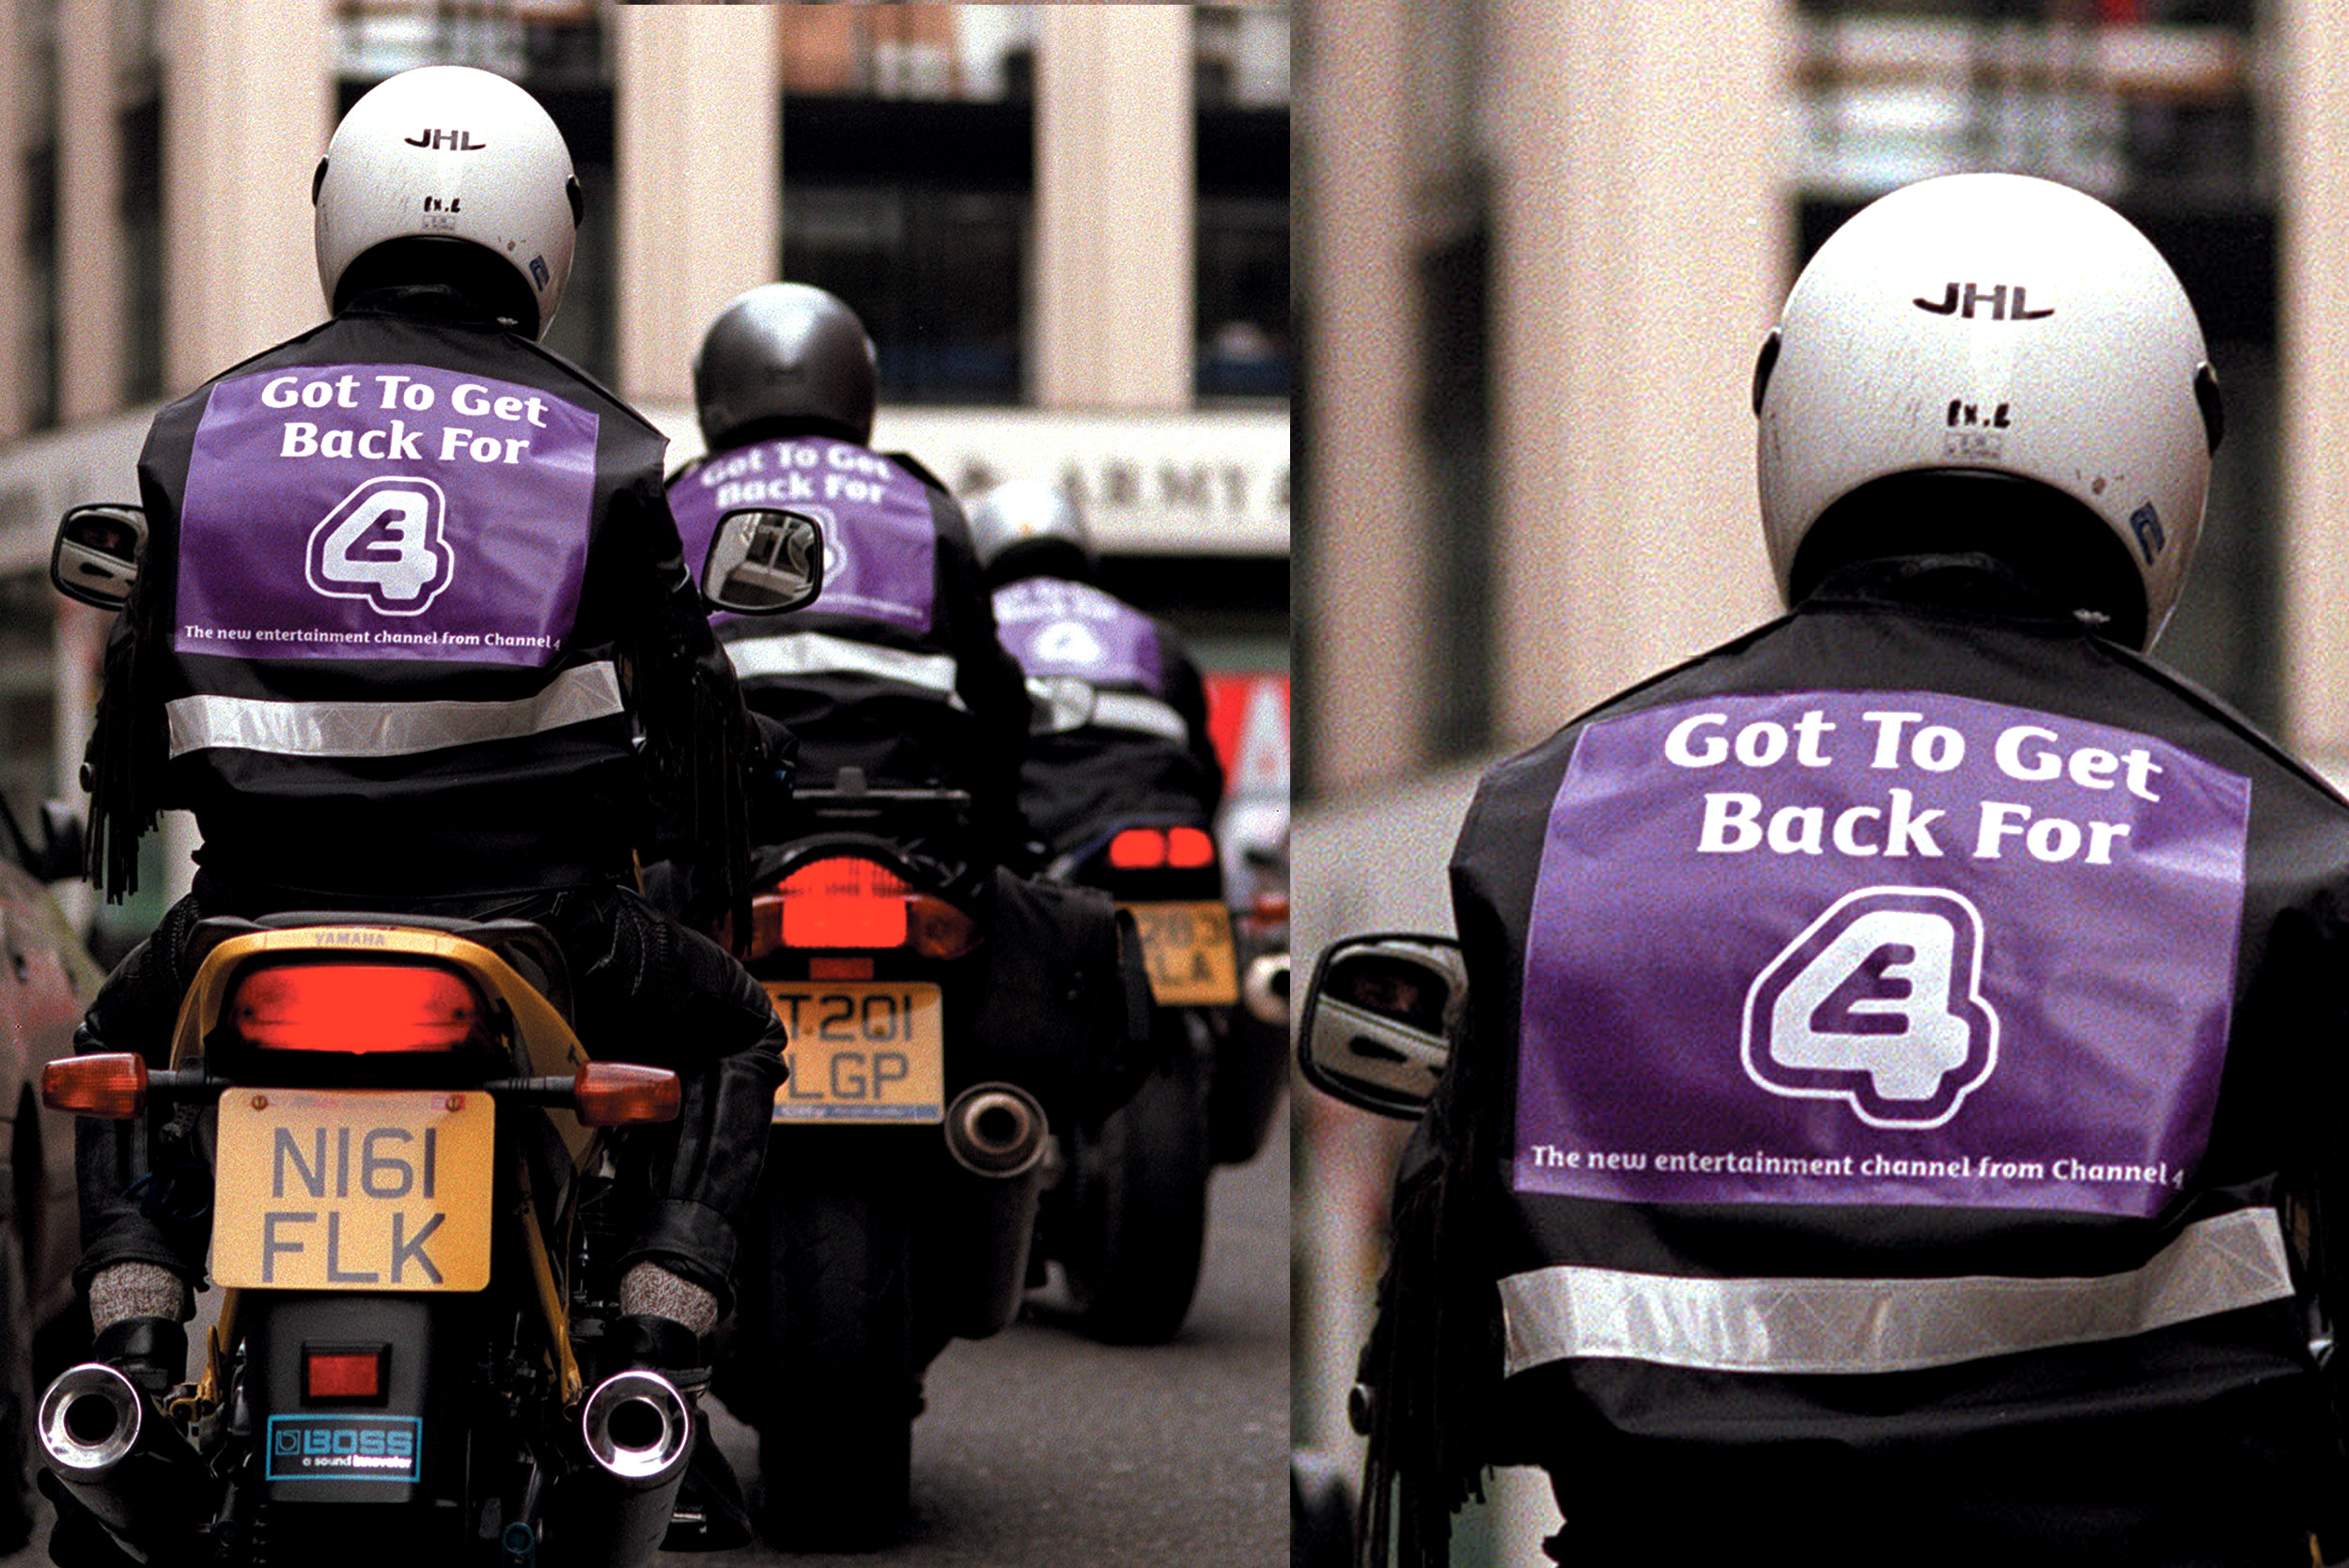 E4 /  Launch of the new TV channel. Innovative media placement on motorbike couriers citywide.